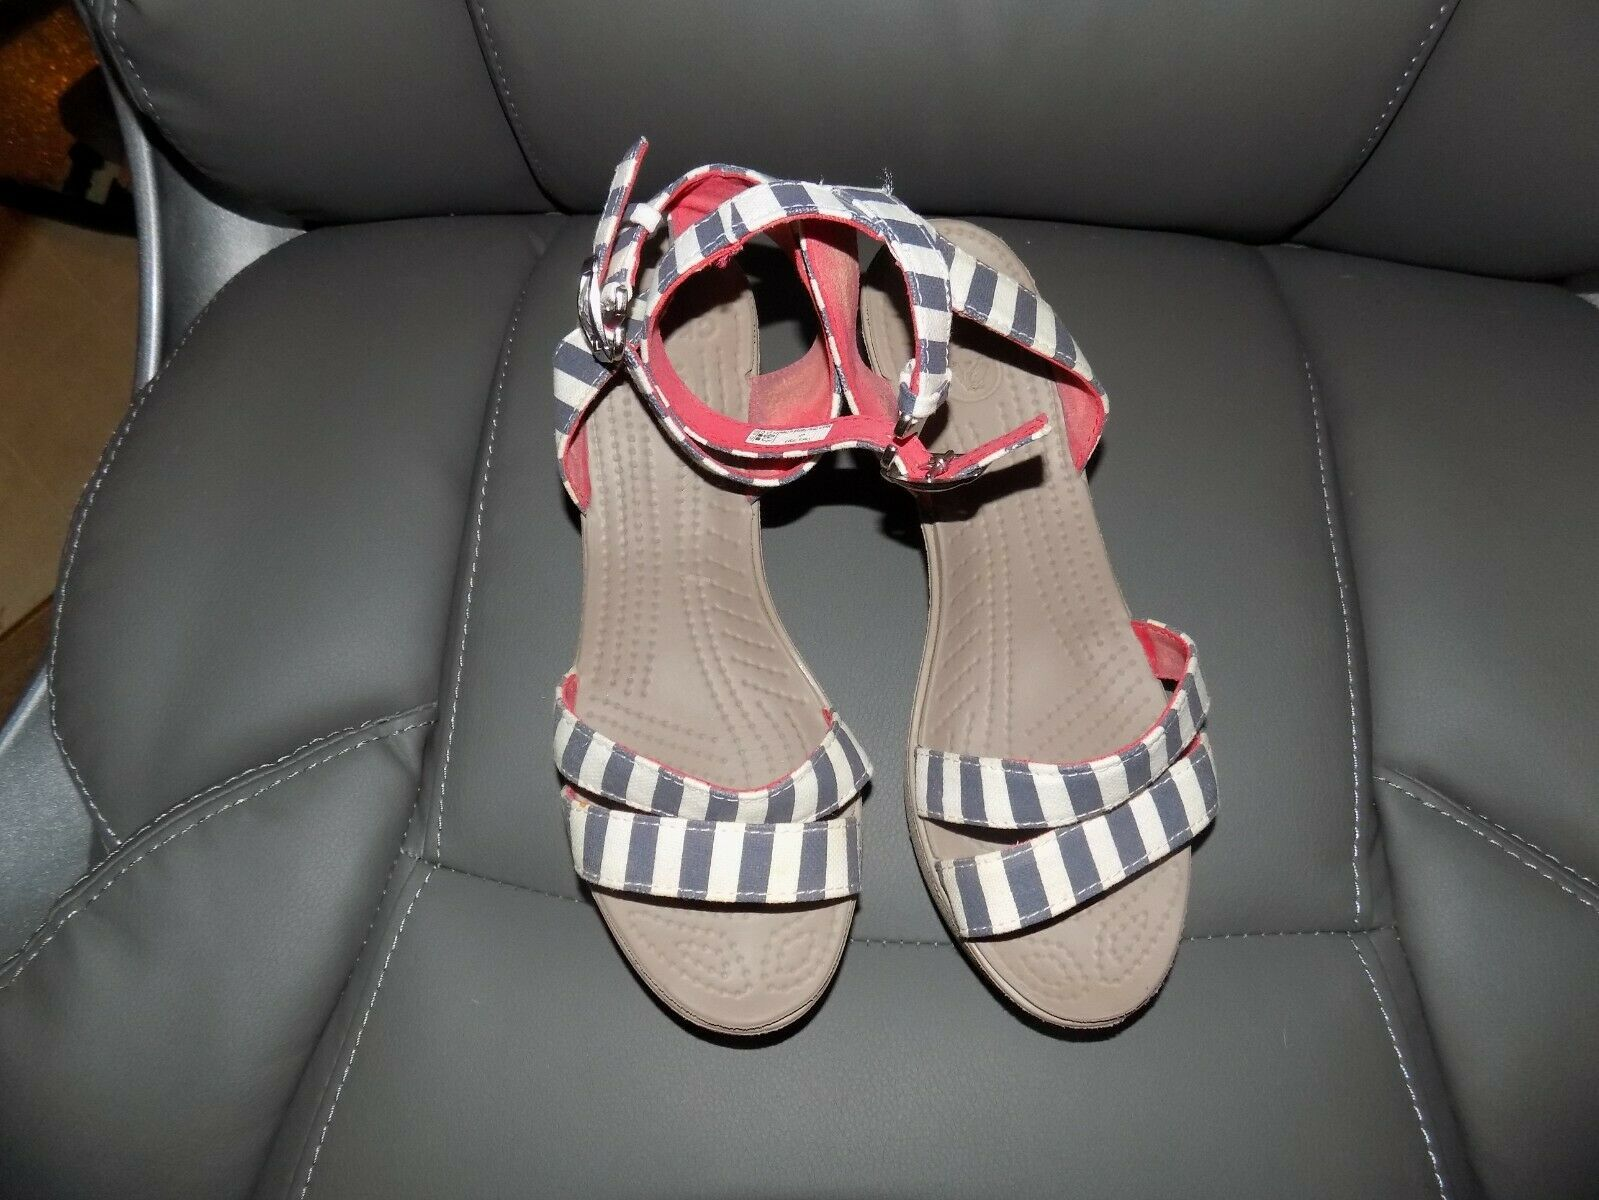 Crocs Leigh II Striped Ankle Strap Wedge Sandals Size 7 Women's EUC - $36.00